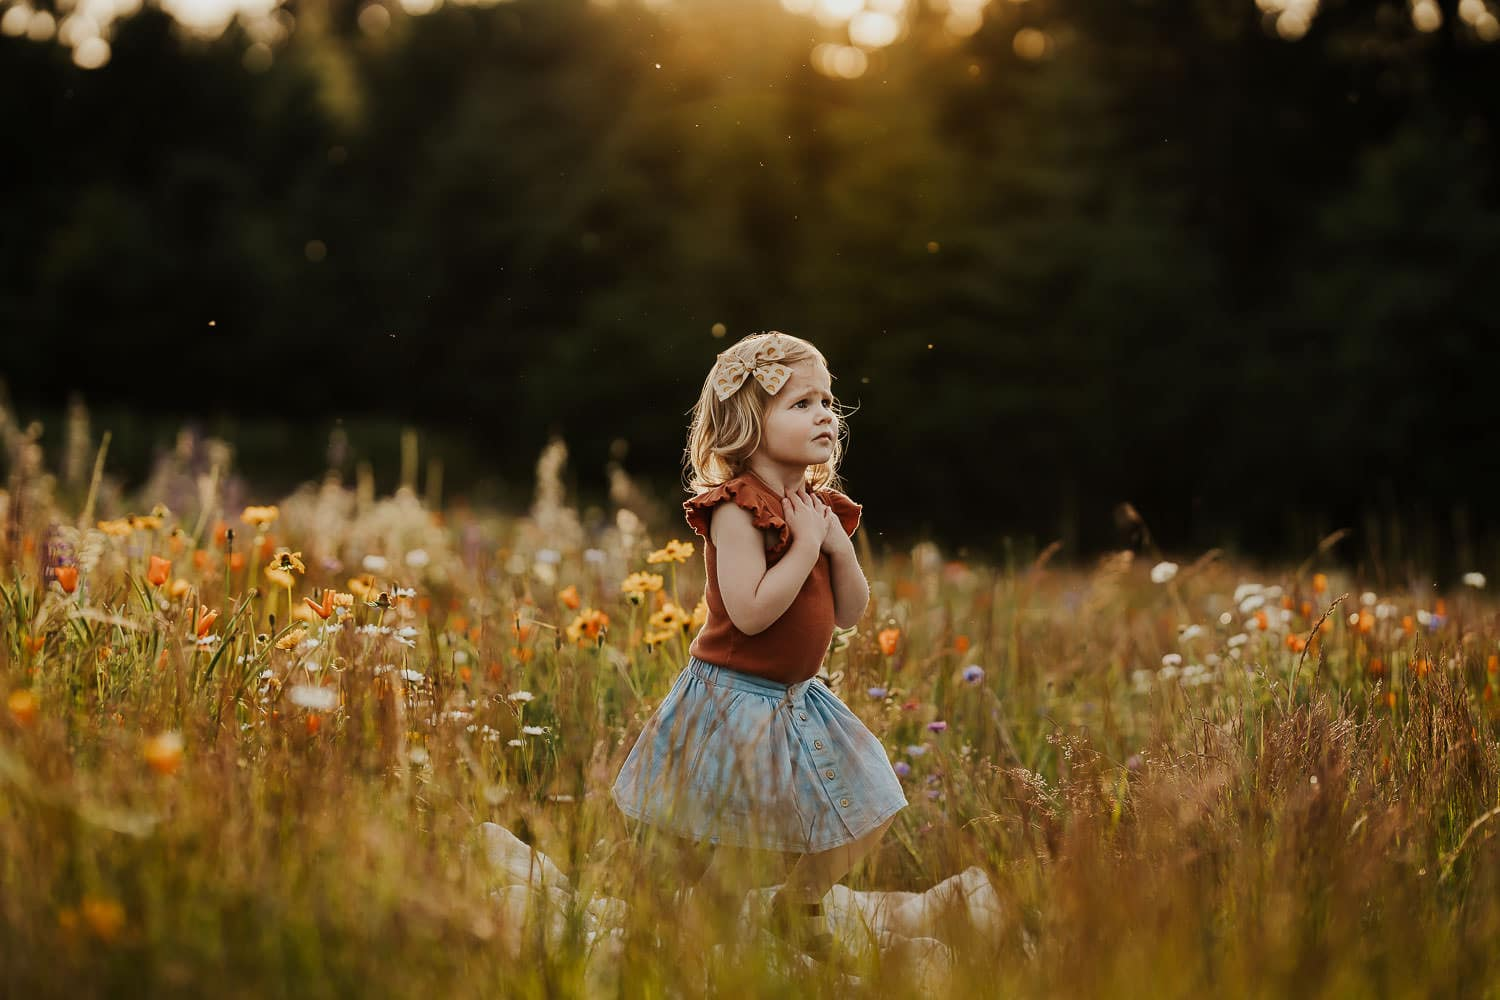 Little girl in a field of flowers with her hands on her heart